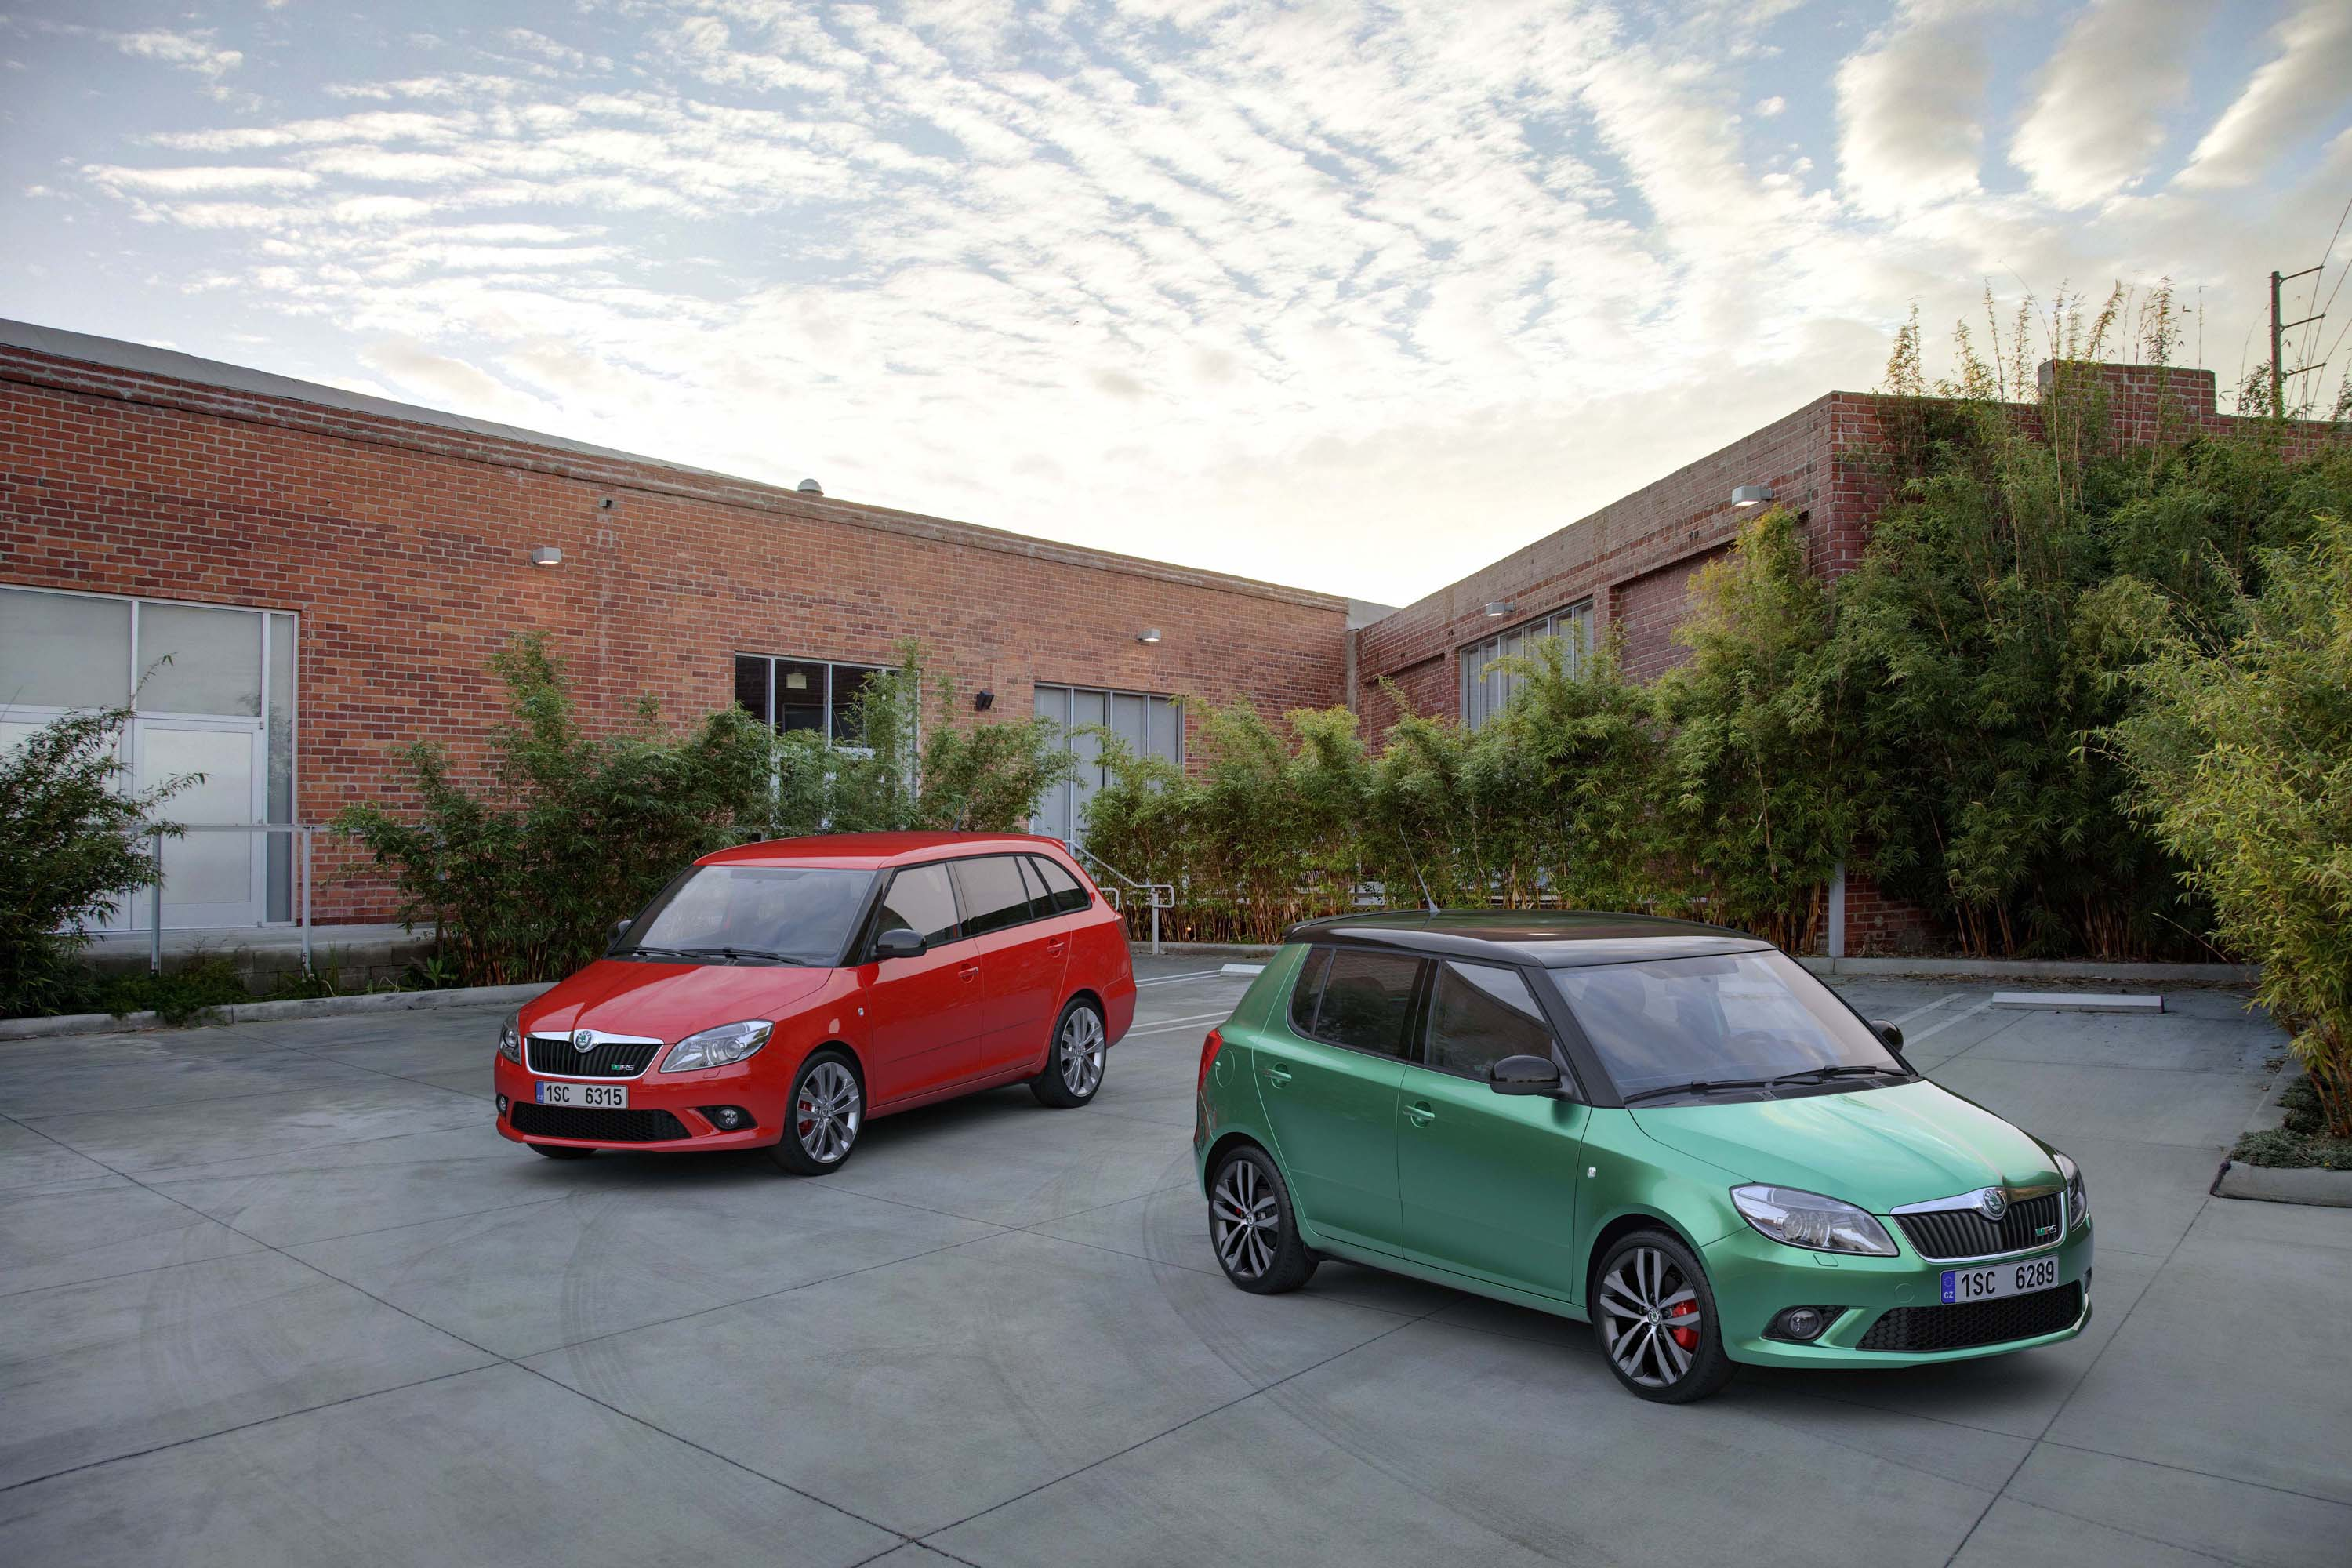 2017 Skoda Fabia Sketches photo - 1